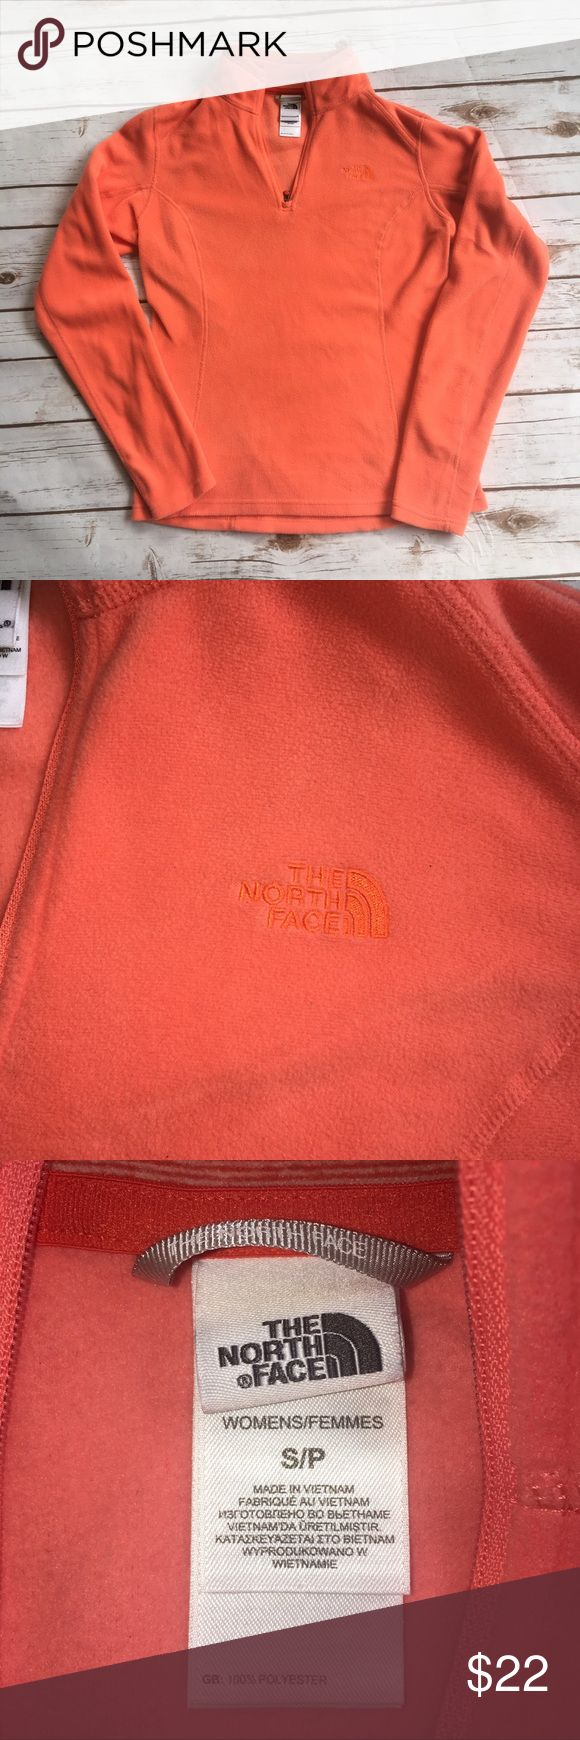 The North Face fleece 1/4 zip pullover The North Face fleece 1/4 zip pullover. SMALL. Orange/coral color, excellent used condition. Smoke free home. The North Face Jackets & Coats